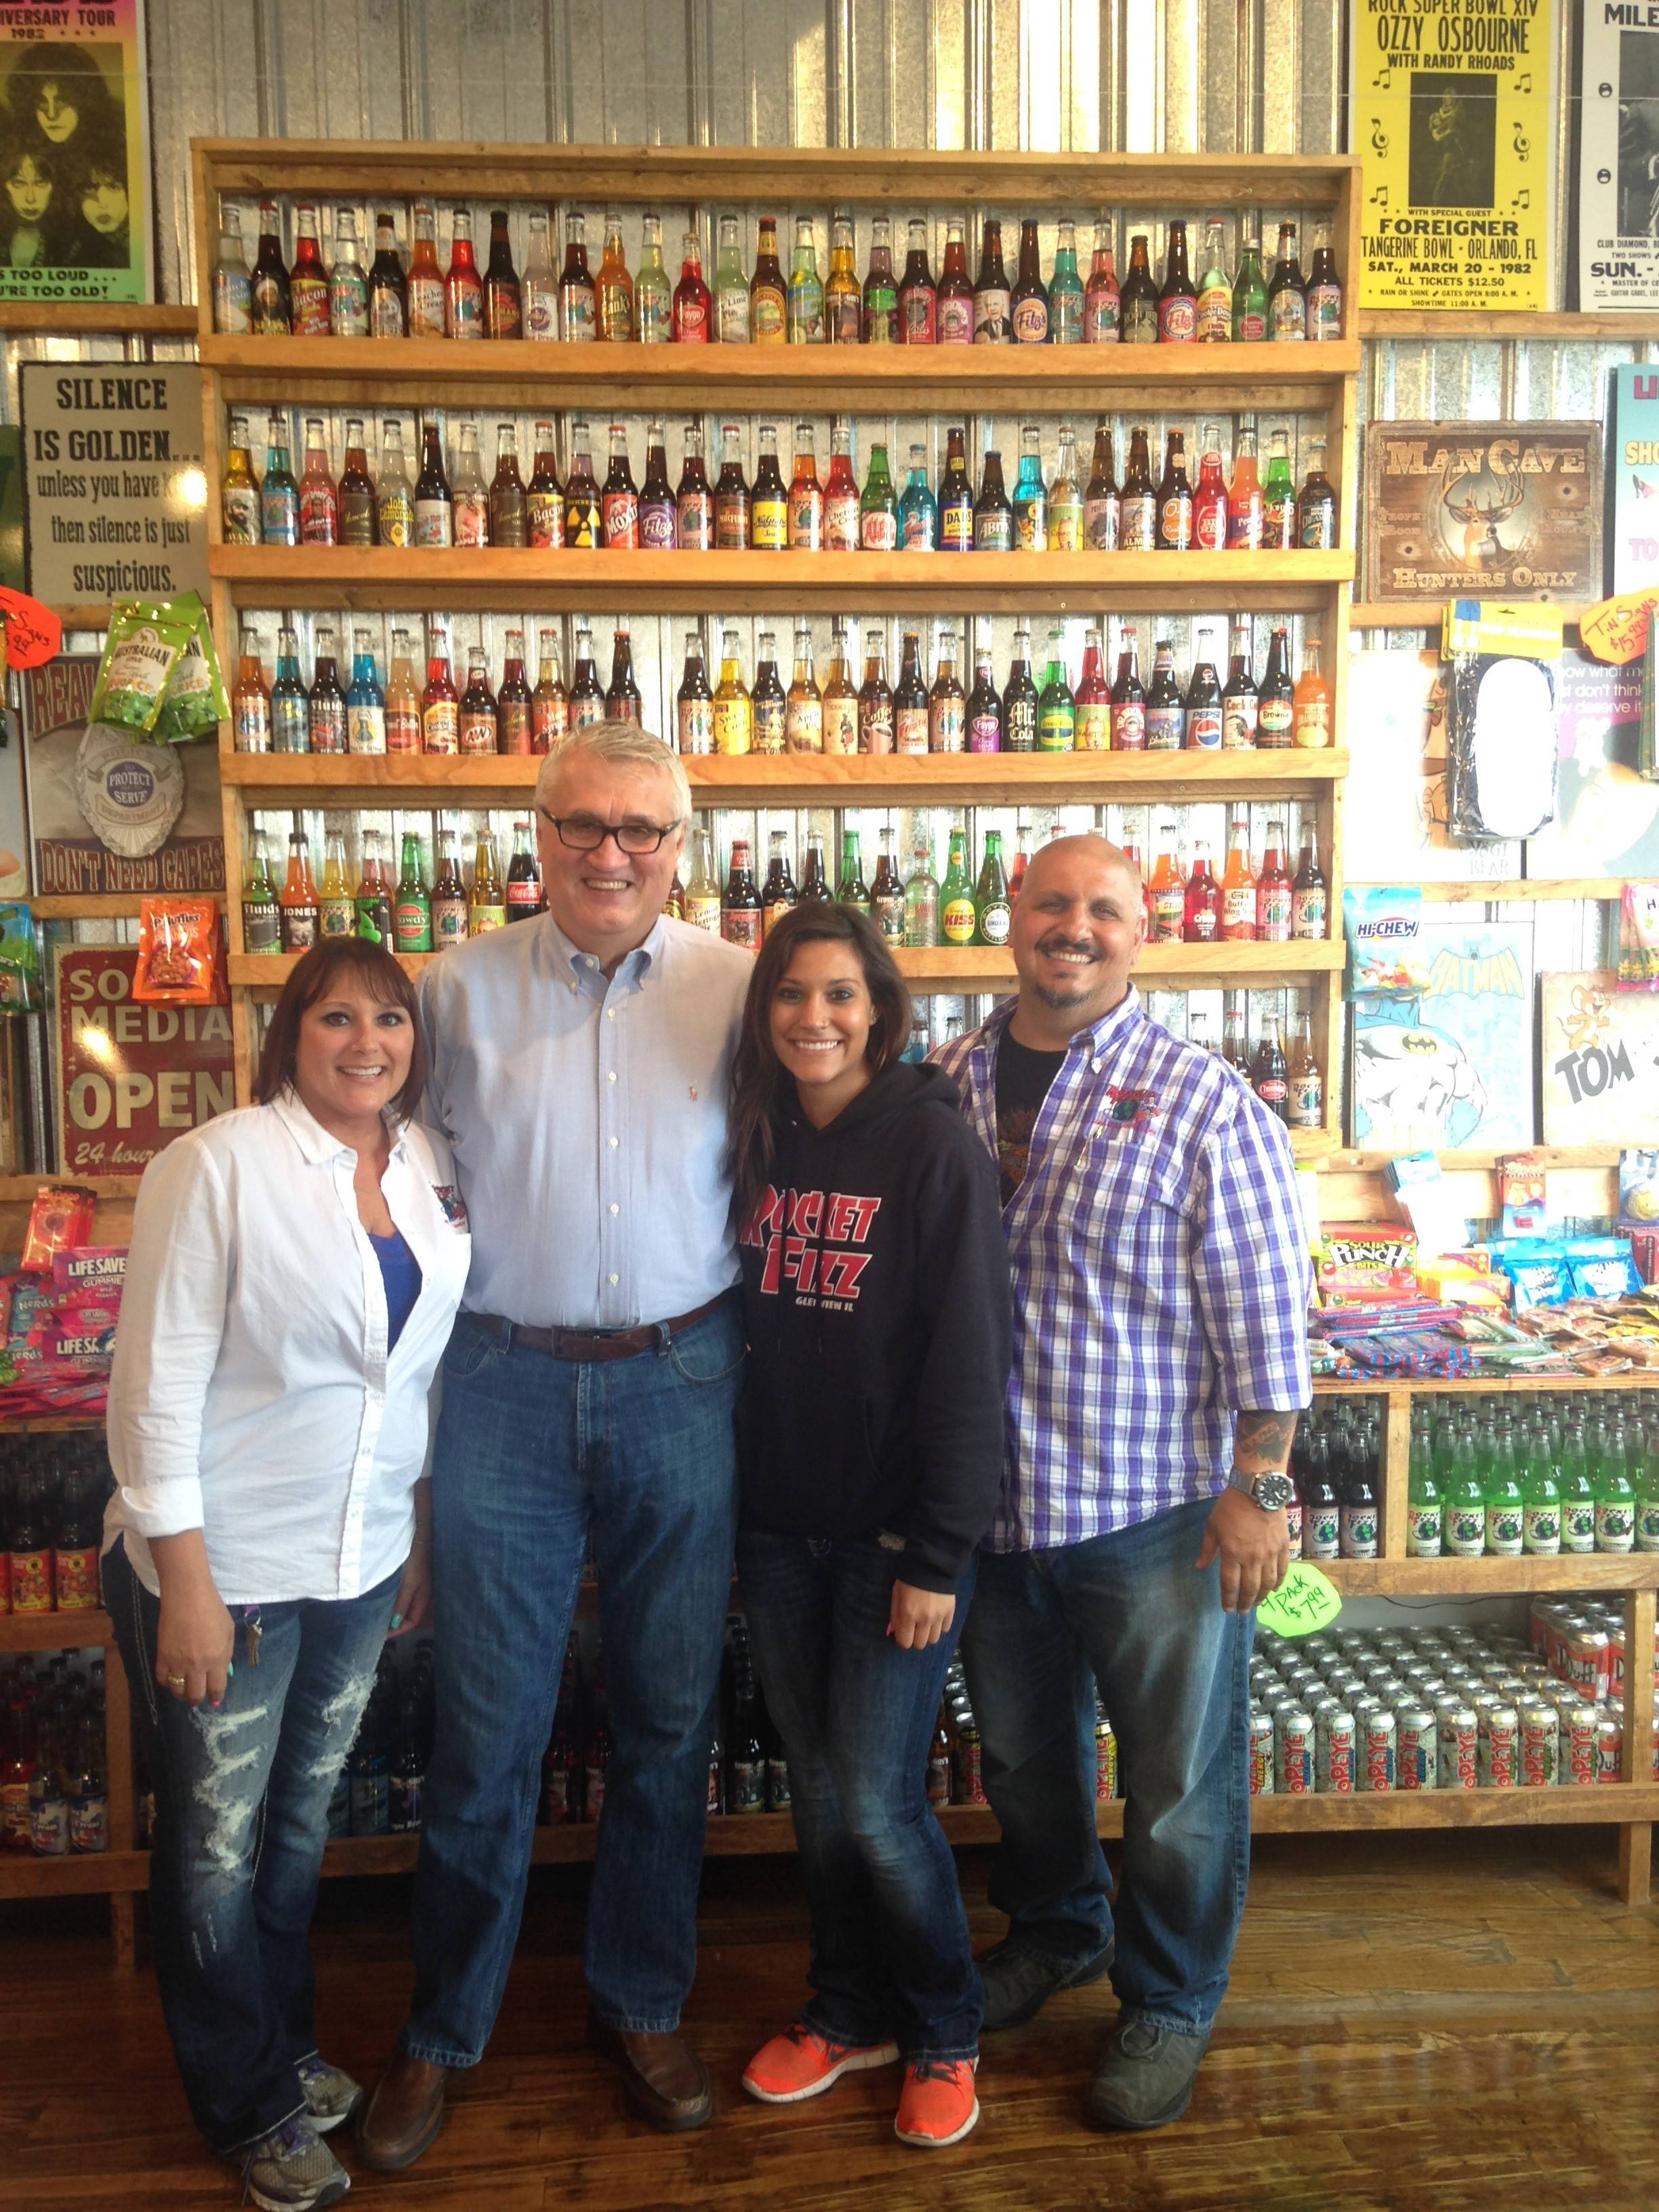 Tonya Brescia, from left, Mayor Ray Rogina, Manager Deana Brescia, and owner Robert Brescia at the new Rocket Fizz Soda Pop and Candy Shop in St. Charles.